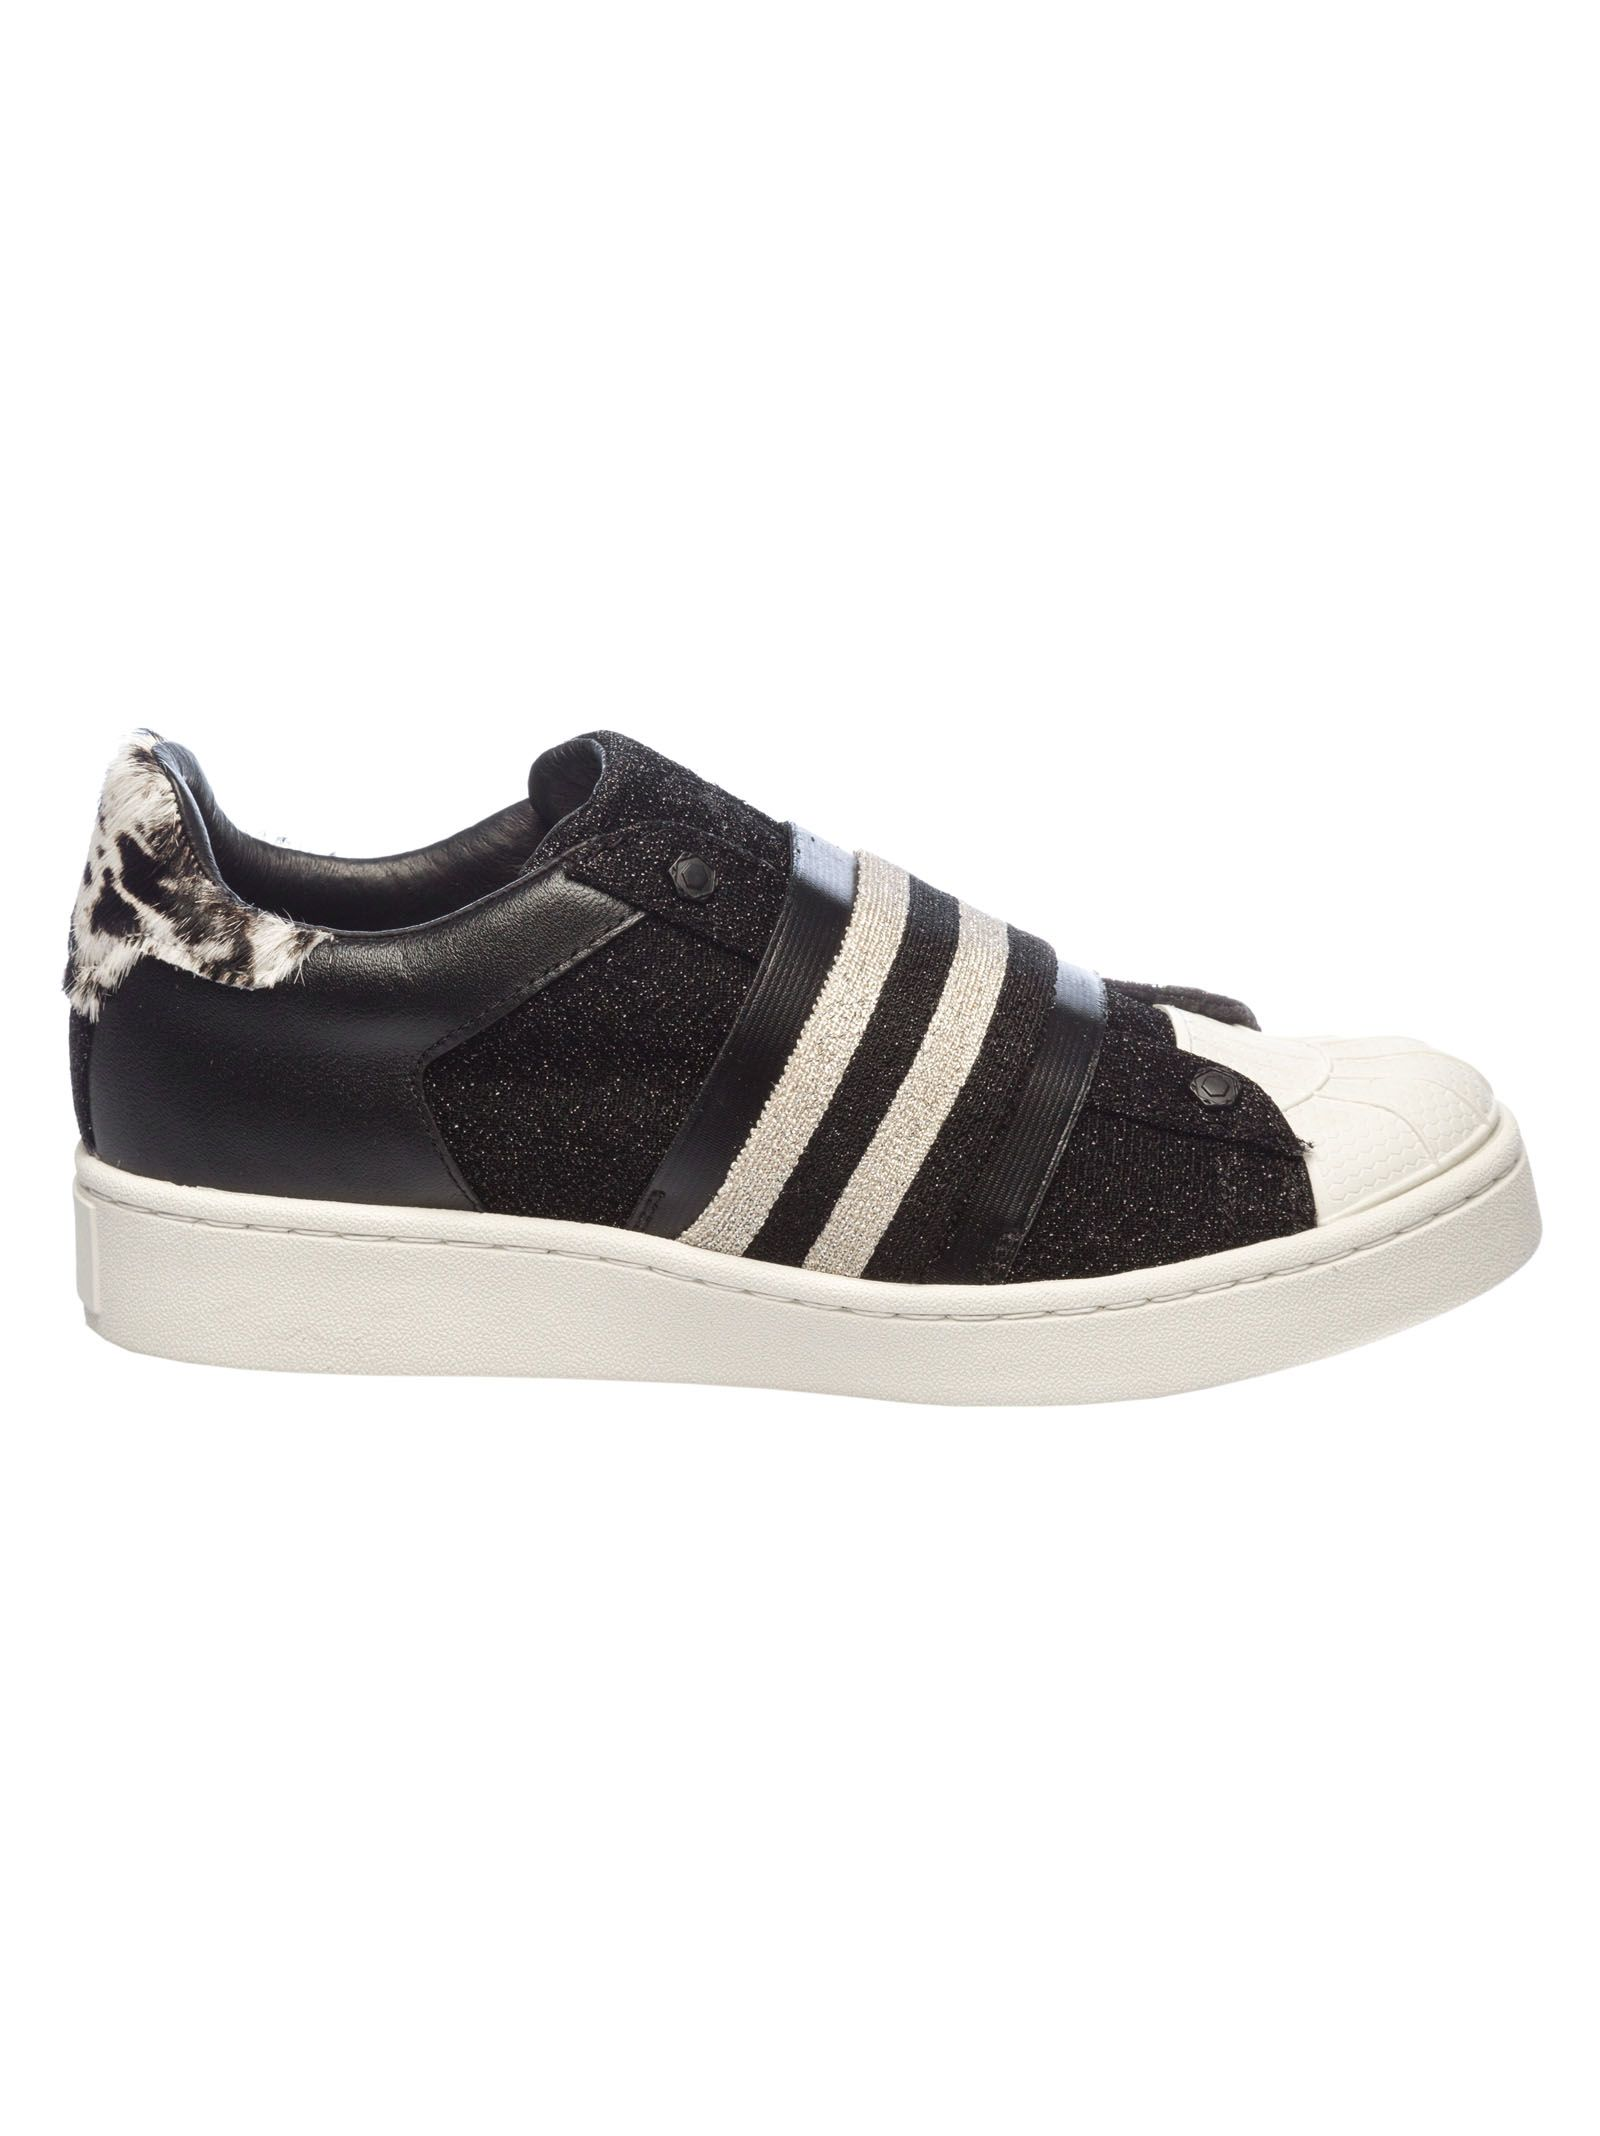 MOA COLLECTION Moa Usa M952 Sneakers in Black/White